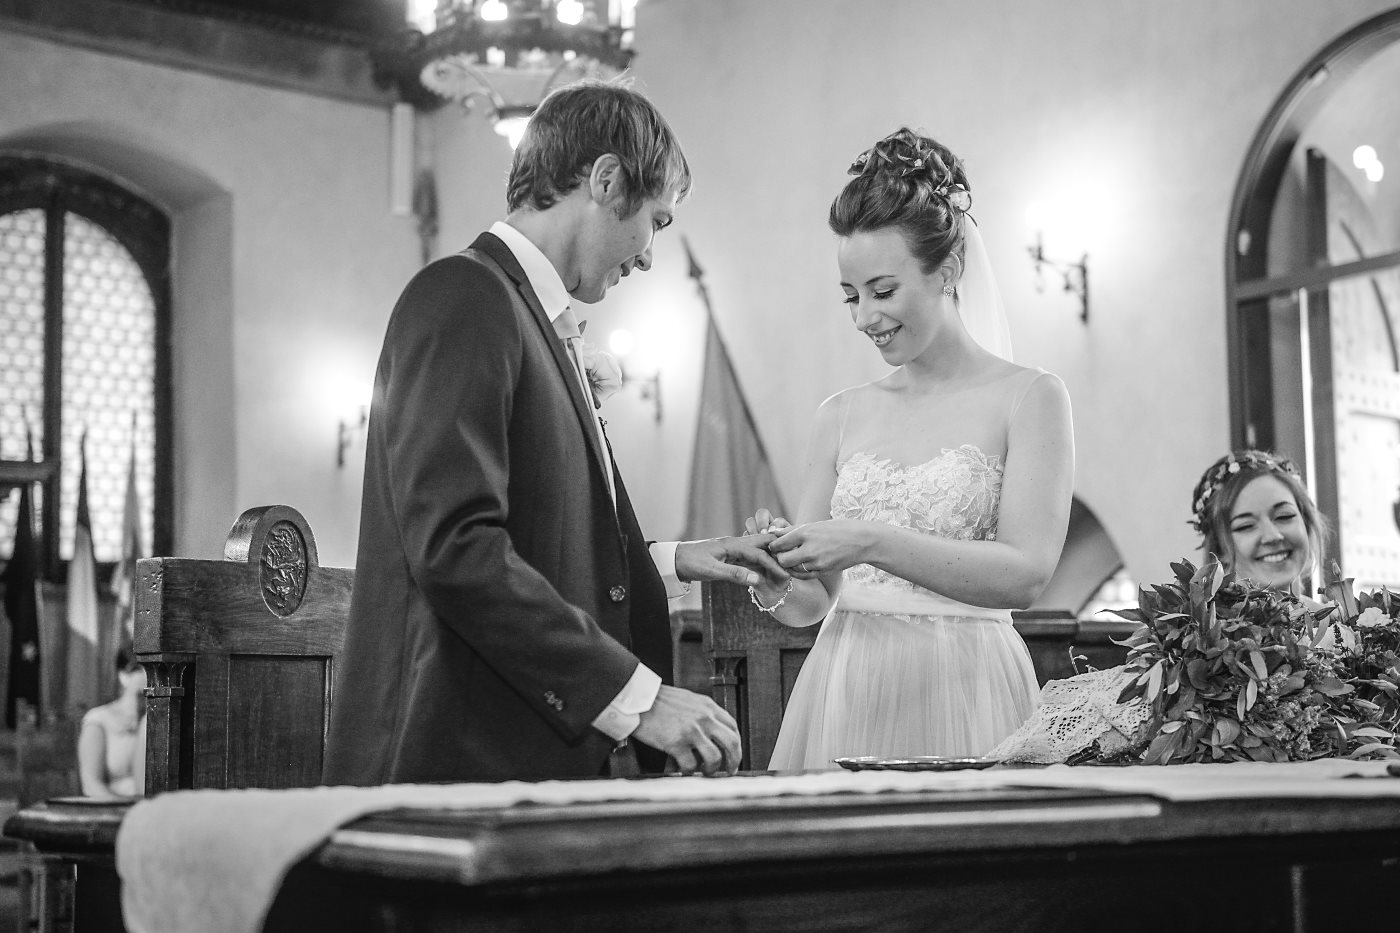 photographer_wedding_cortona_07.jpg